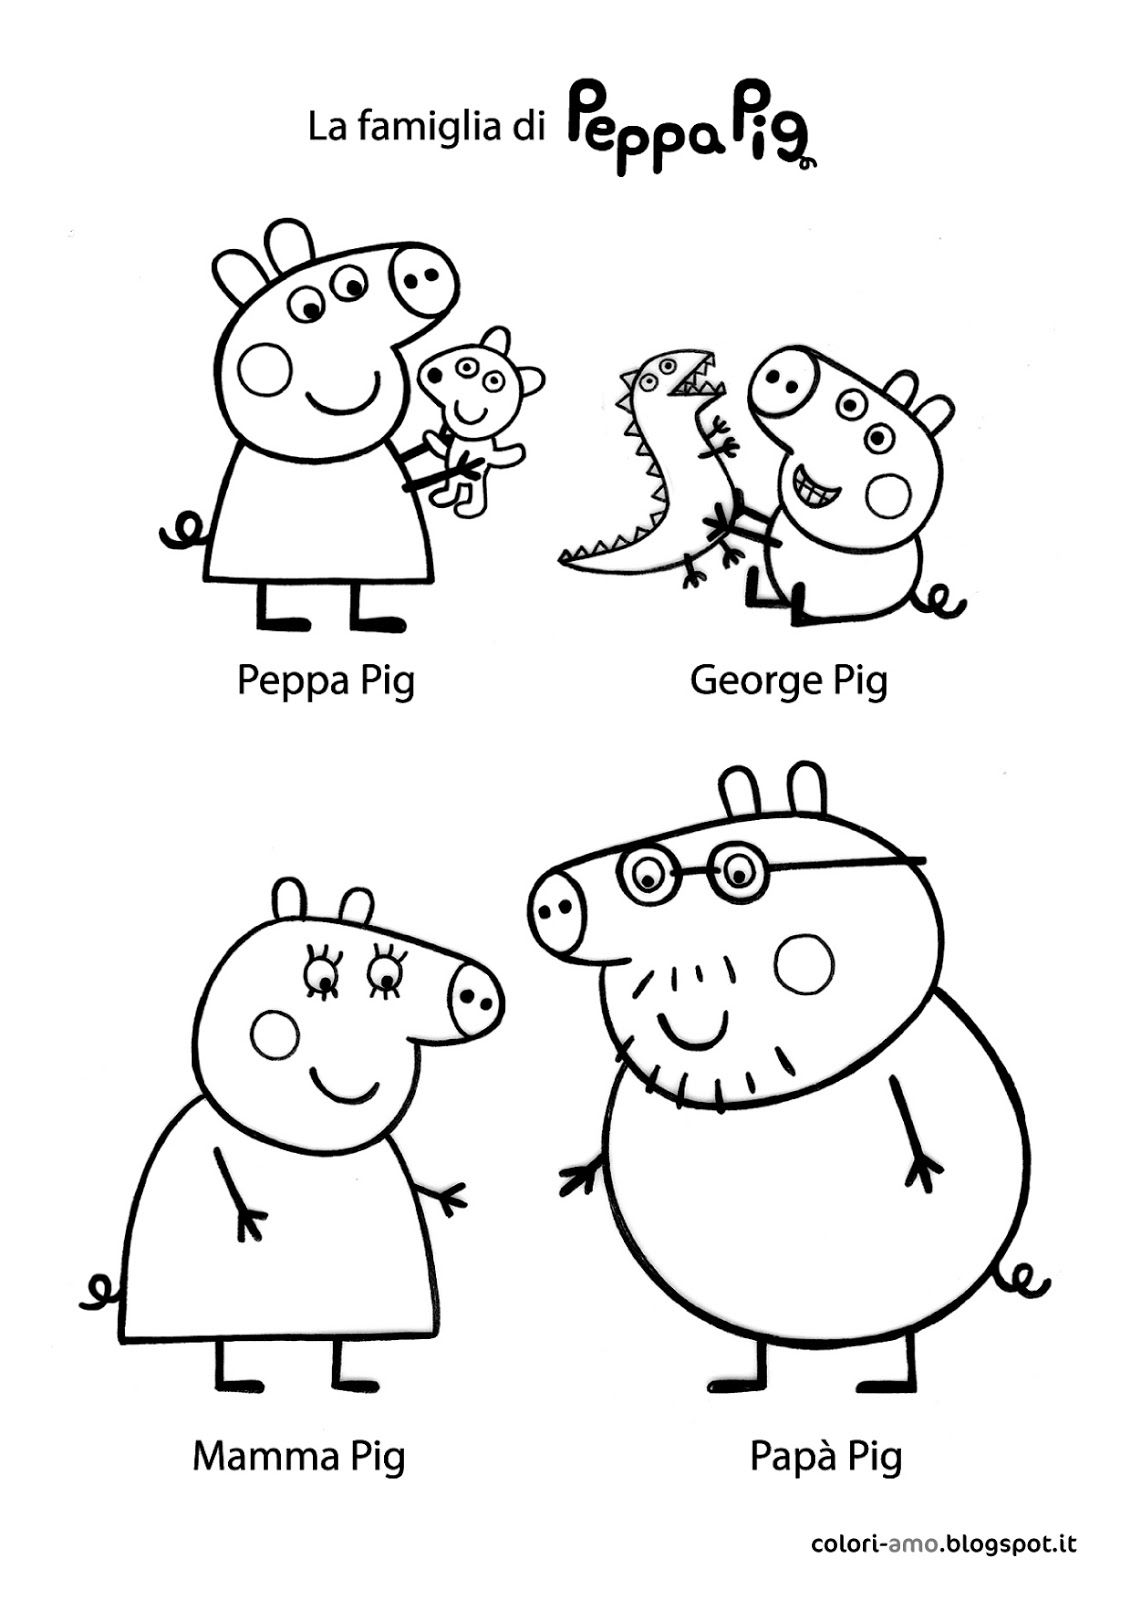 Best Peppa Pig And Friends Coloring Pages Jpg 1131 1600 Peppa Pig Coloring Pages Peppa Pig Colouring Peppa Pig Drawing